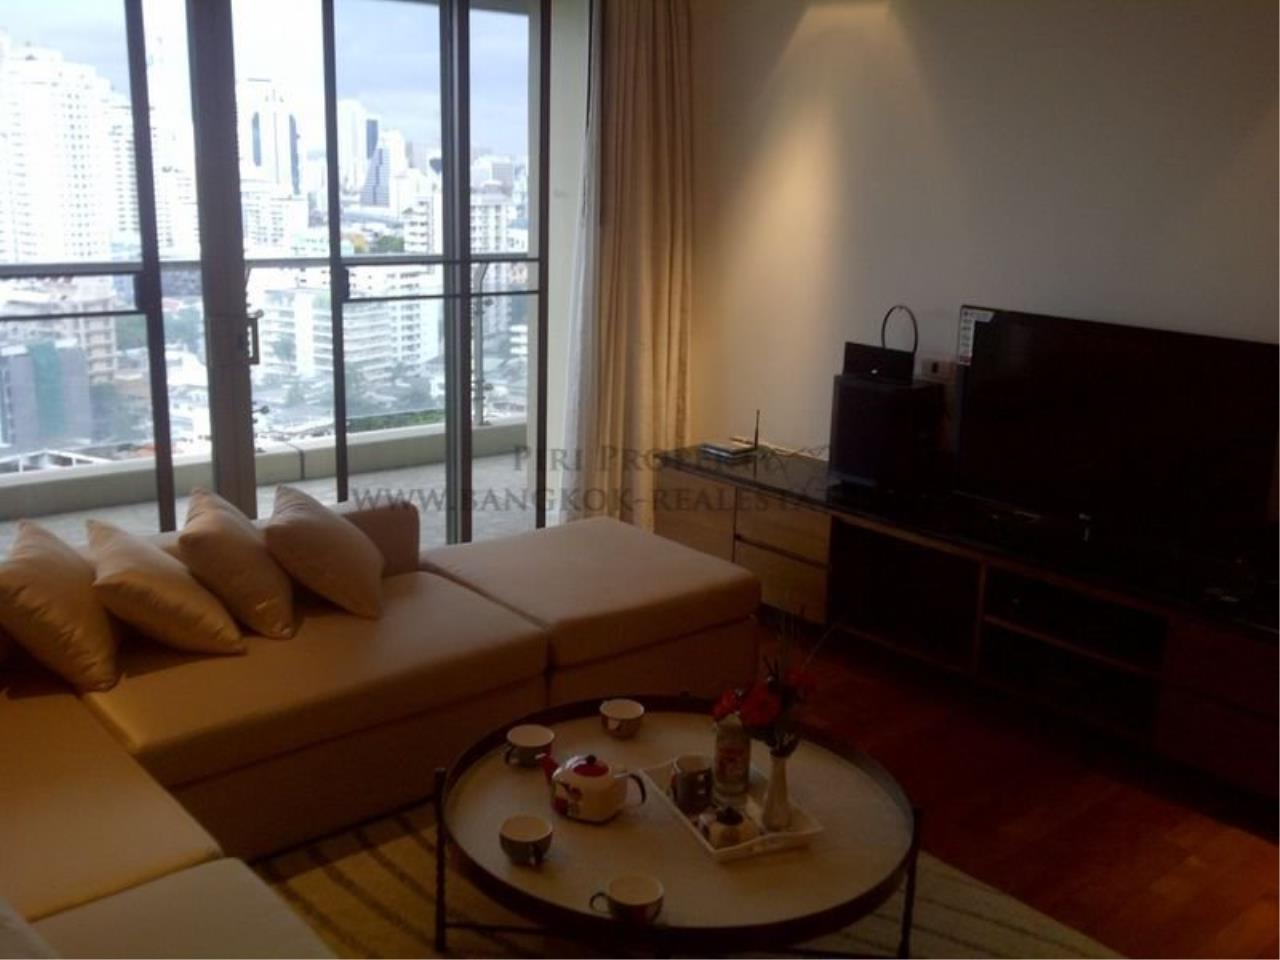 Piri Property Agency's 2 Bedroom Condo in The Lakes building for Rent - High Floor 1